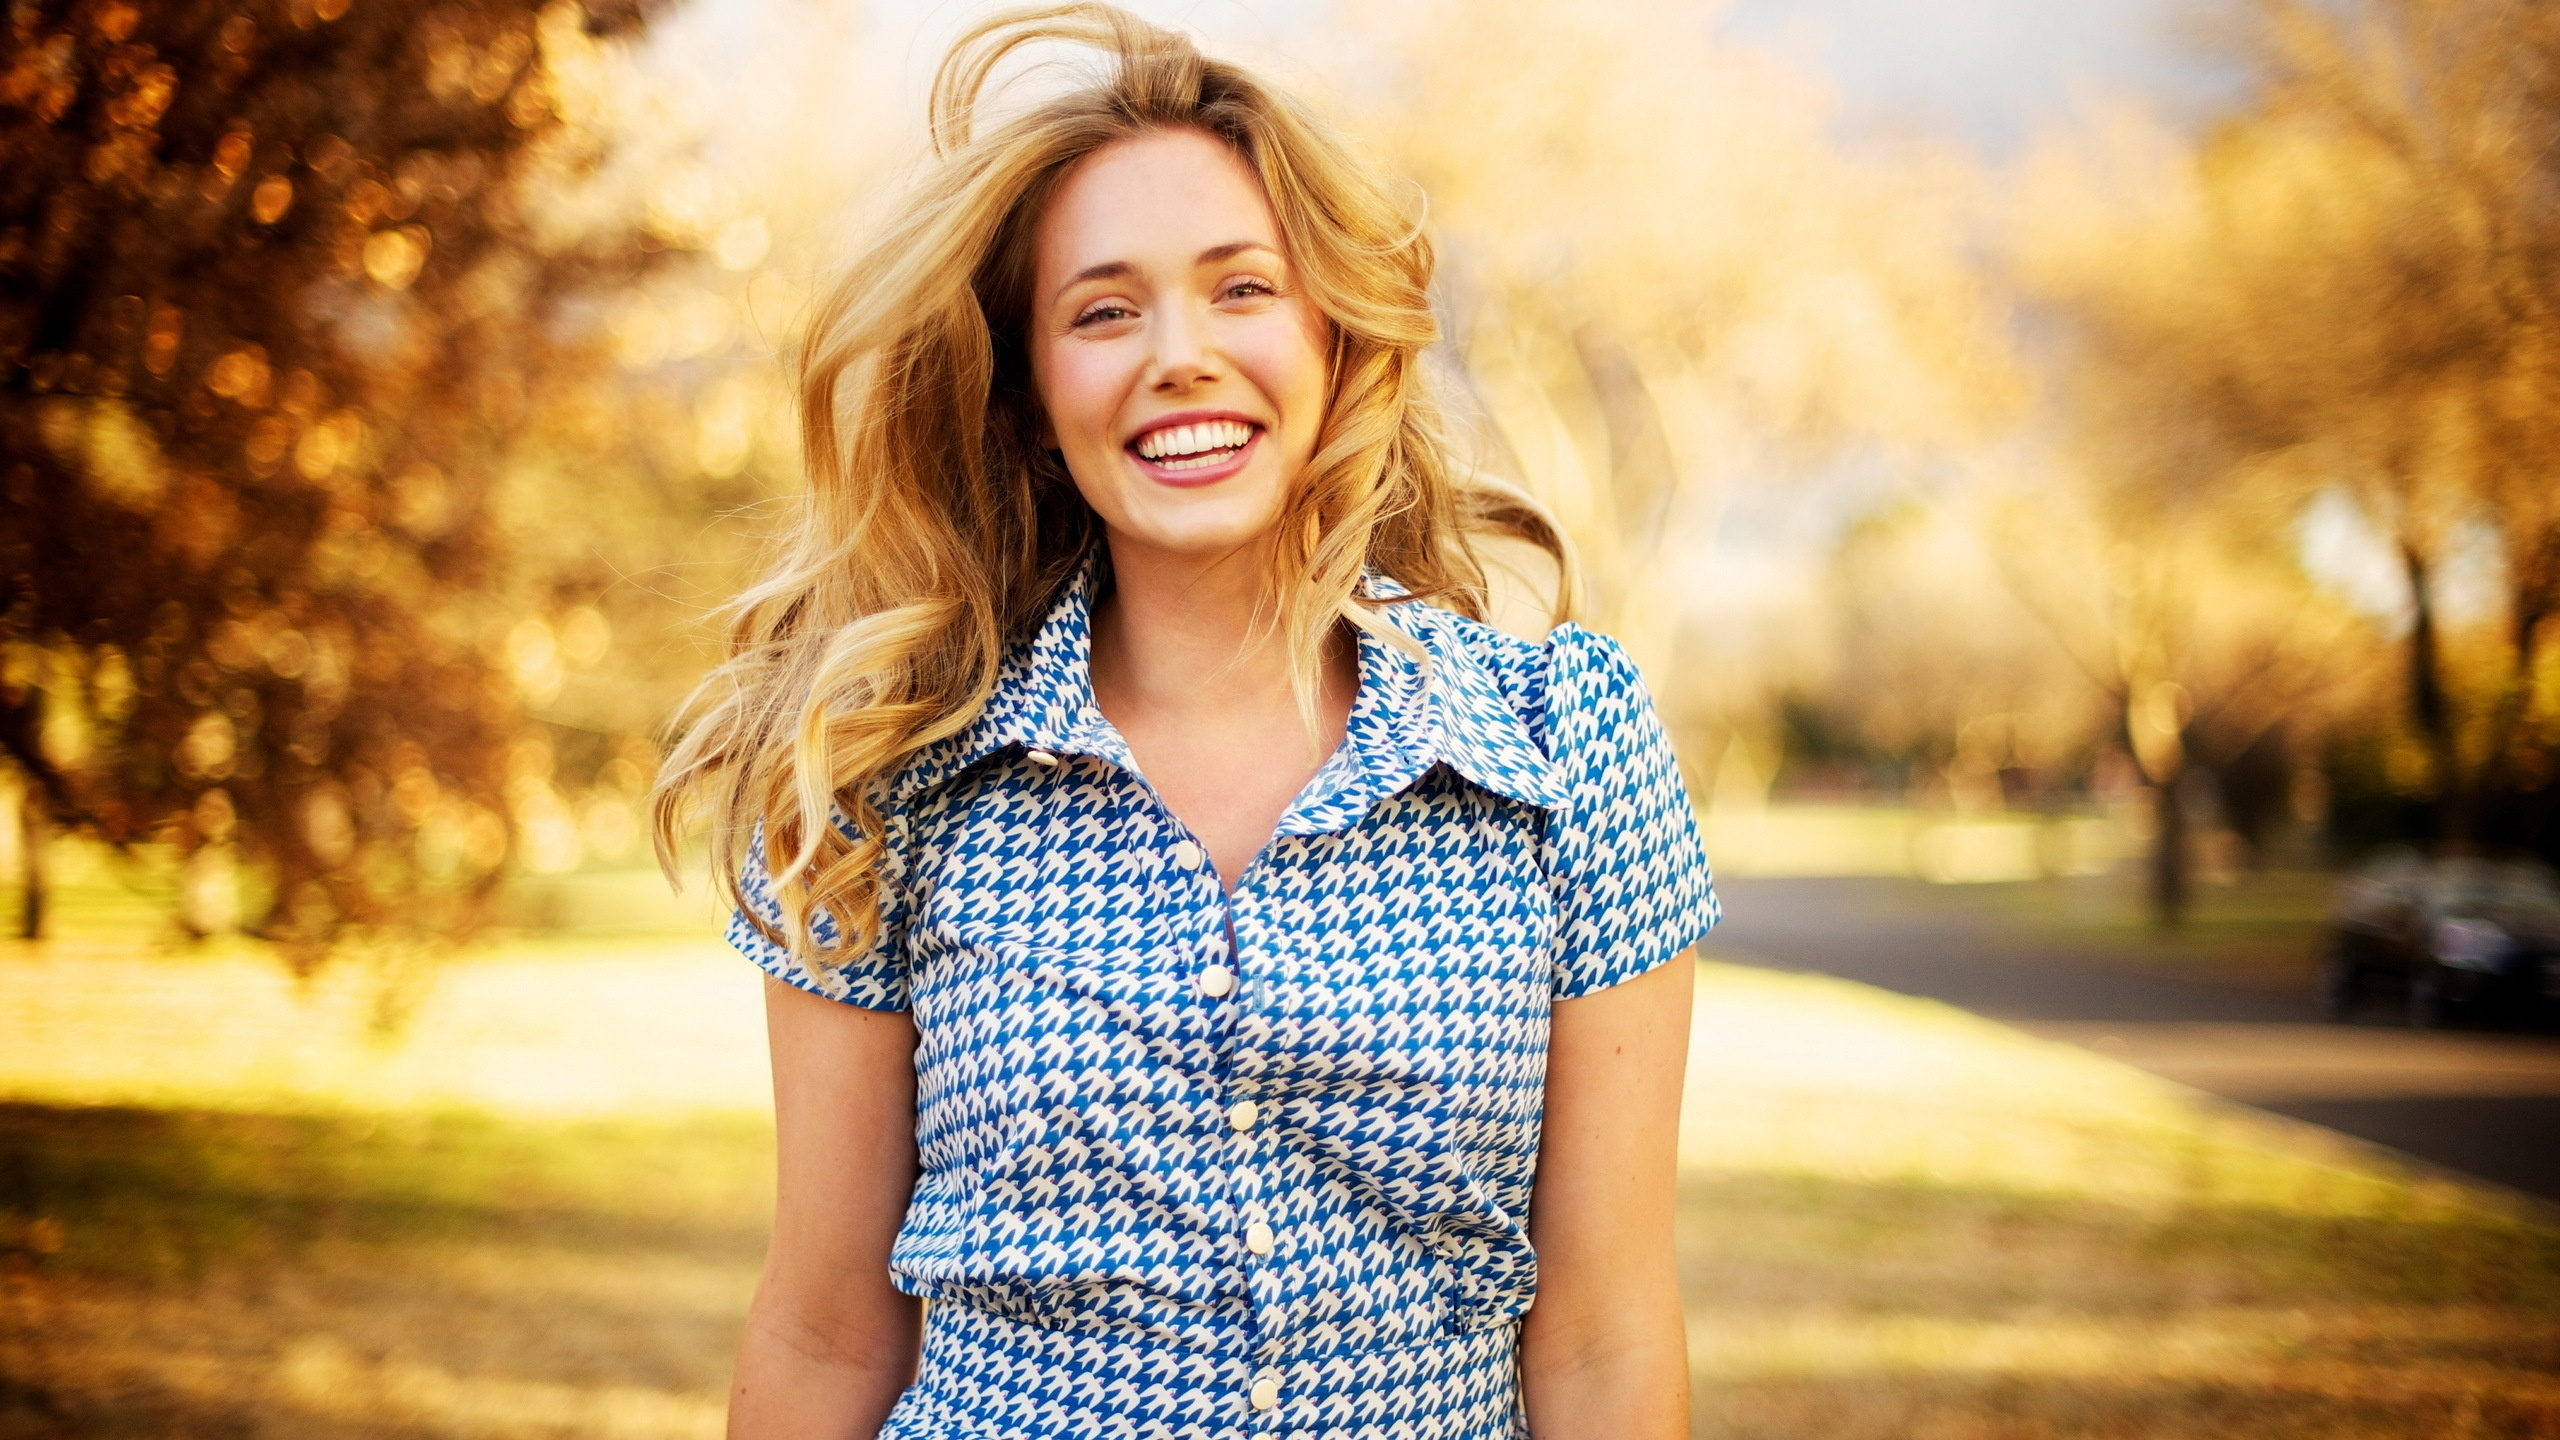 happy-woman-with-beautiful-smile-253486